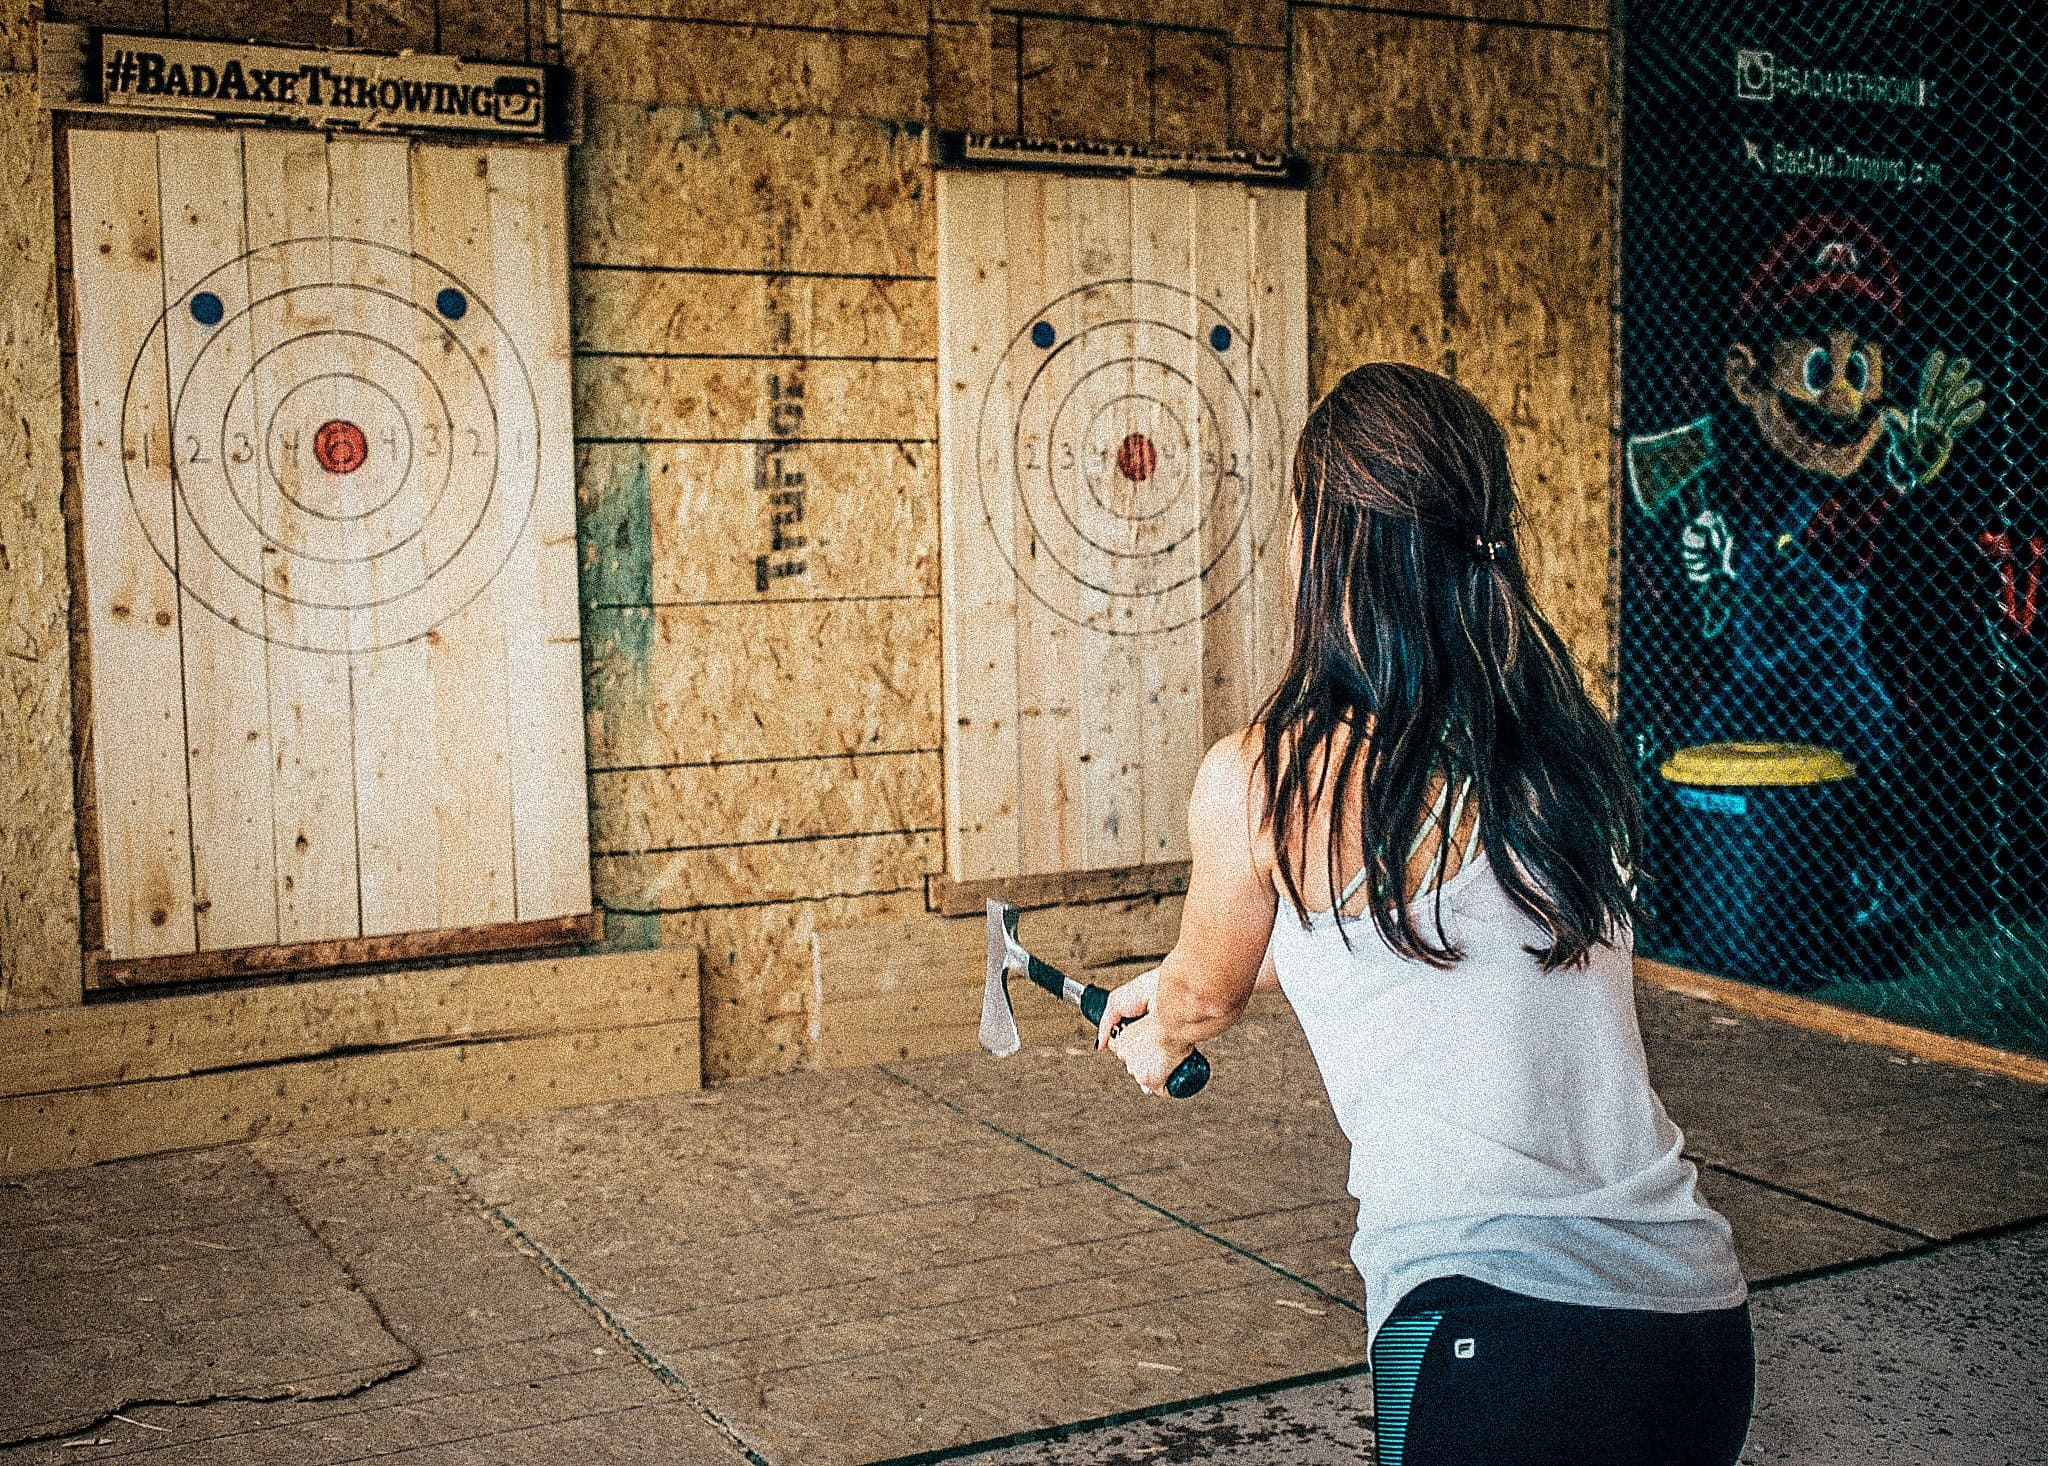 AX THROWING PARTY BUSINESS